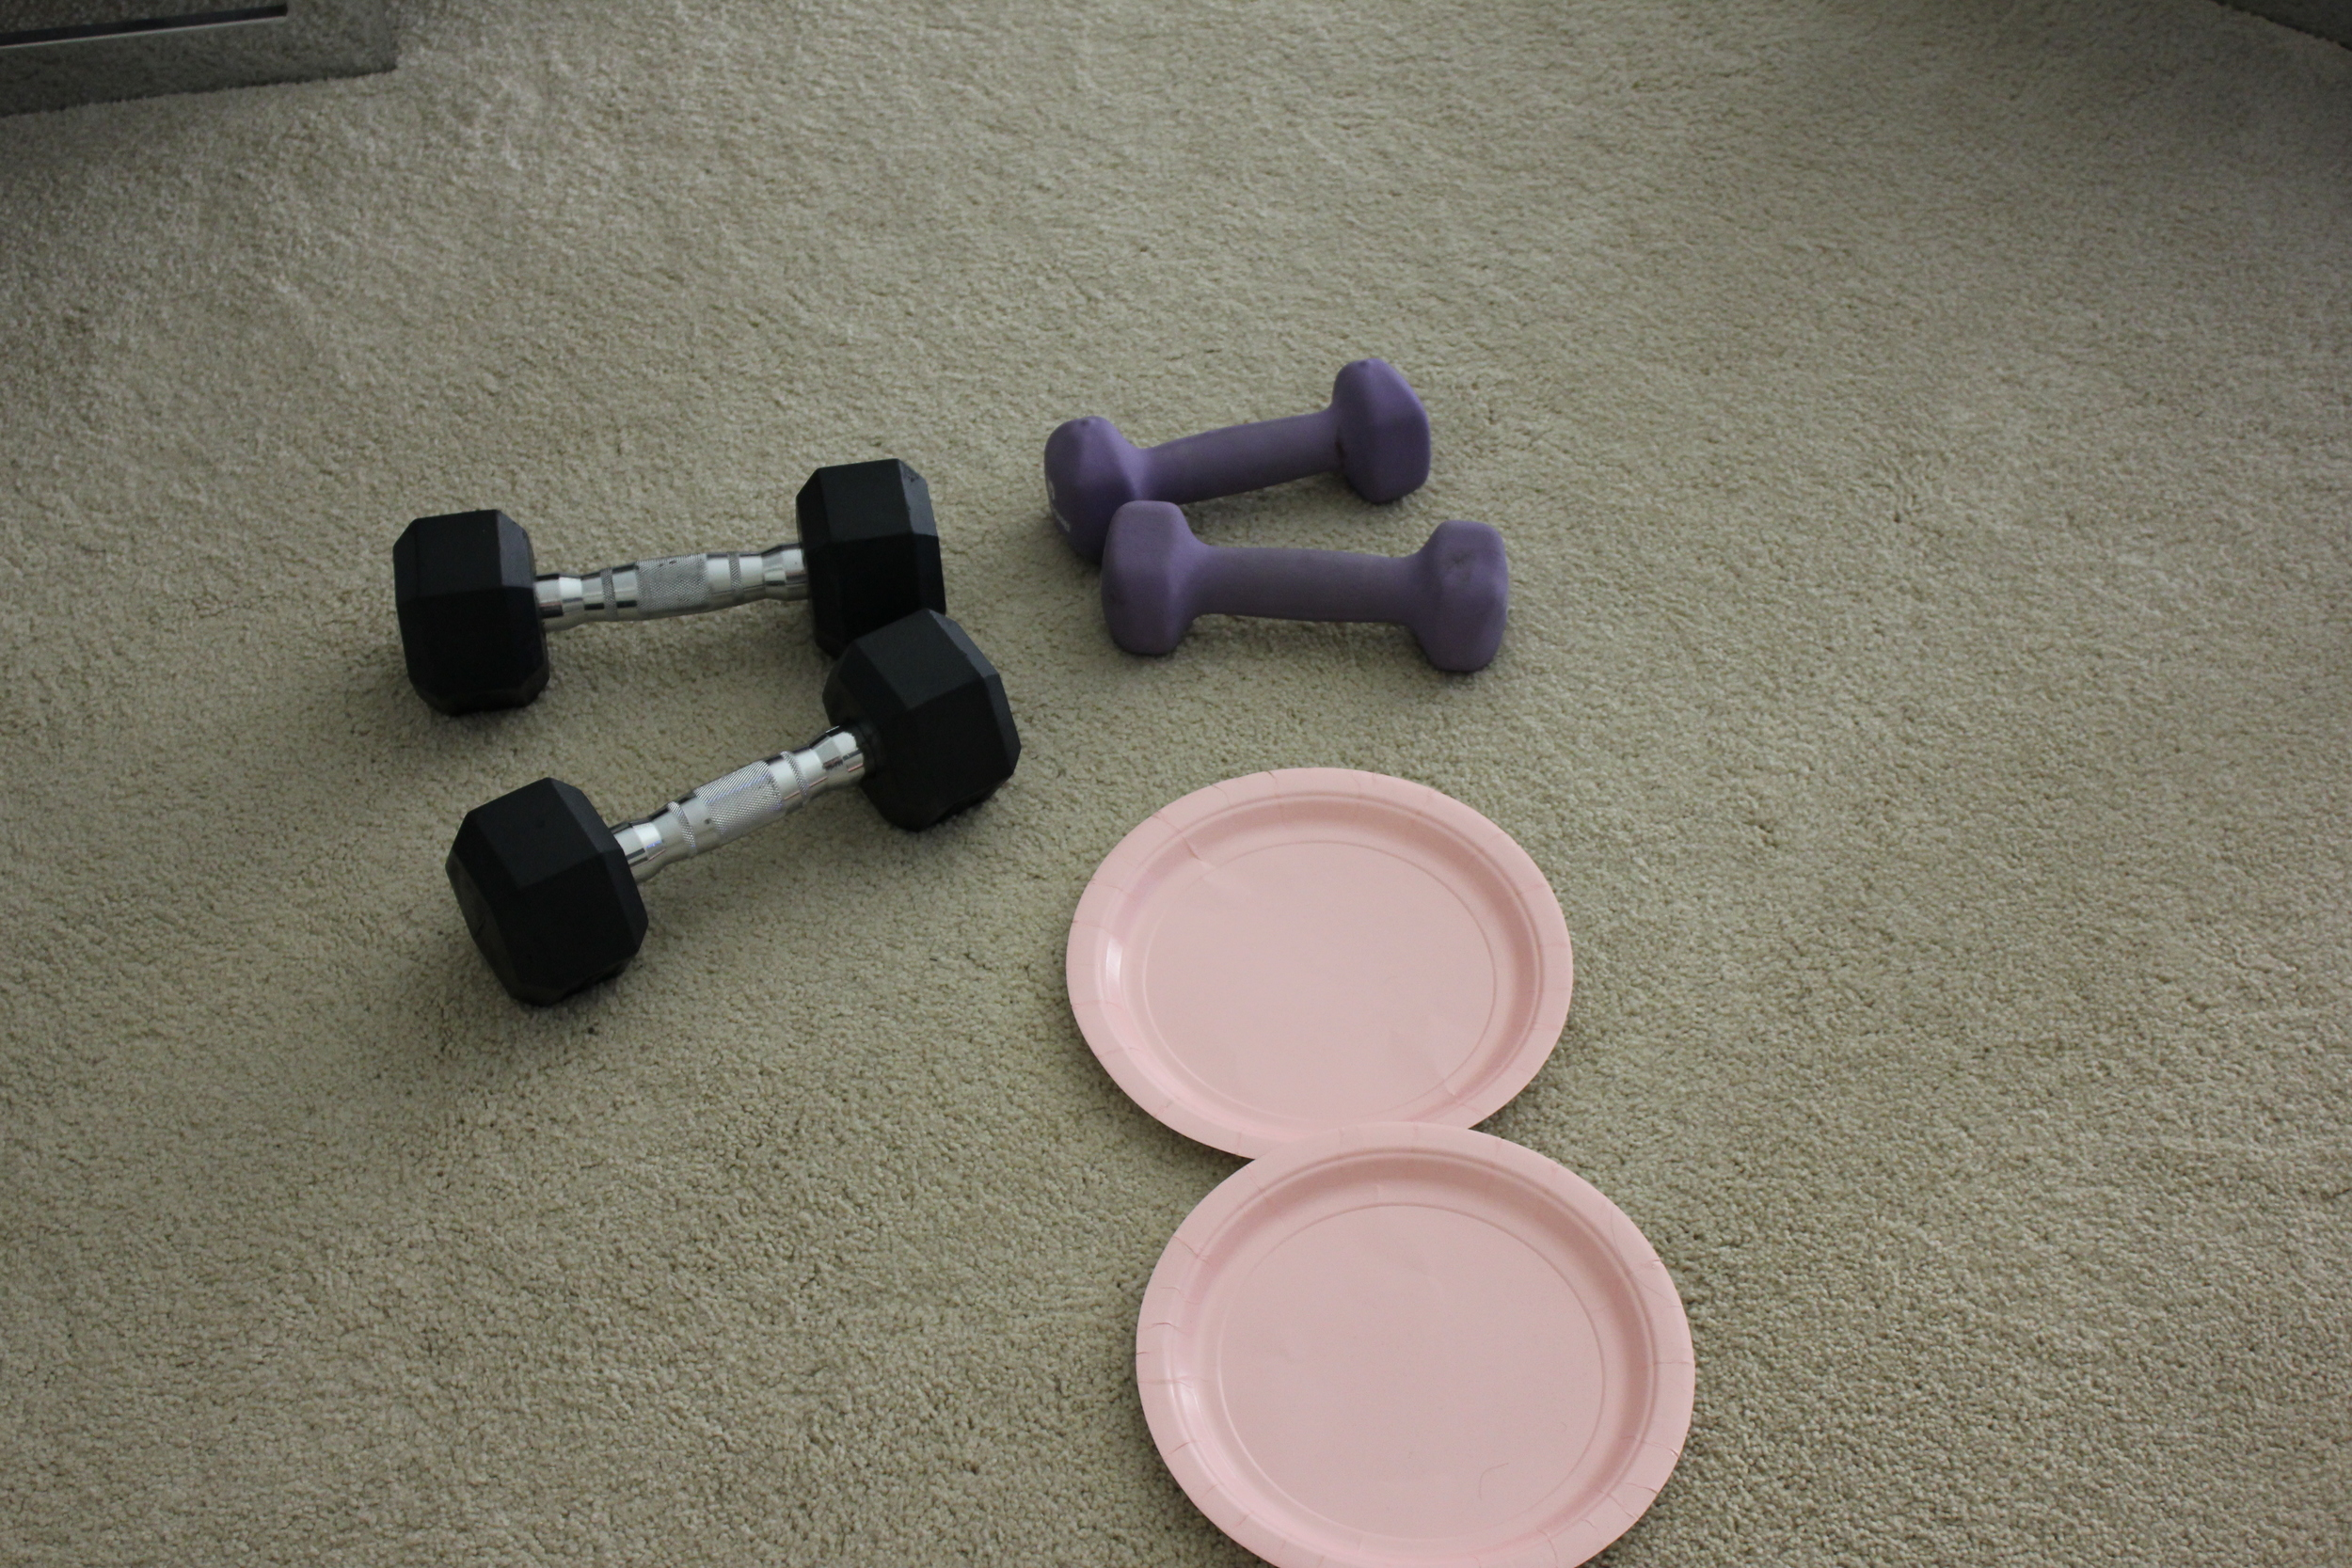 Me getting creative...kidnapping weights from the gym and using paper plates